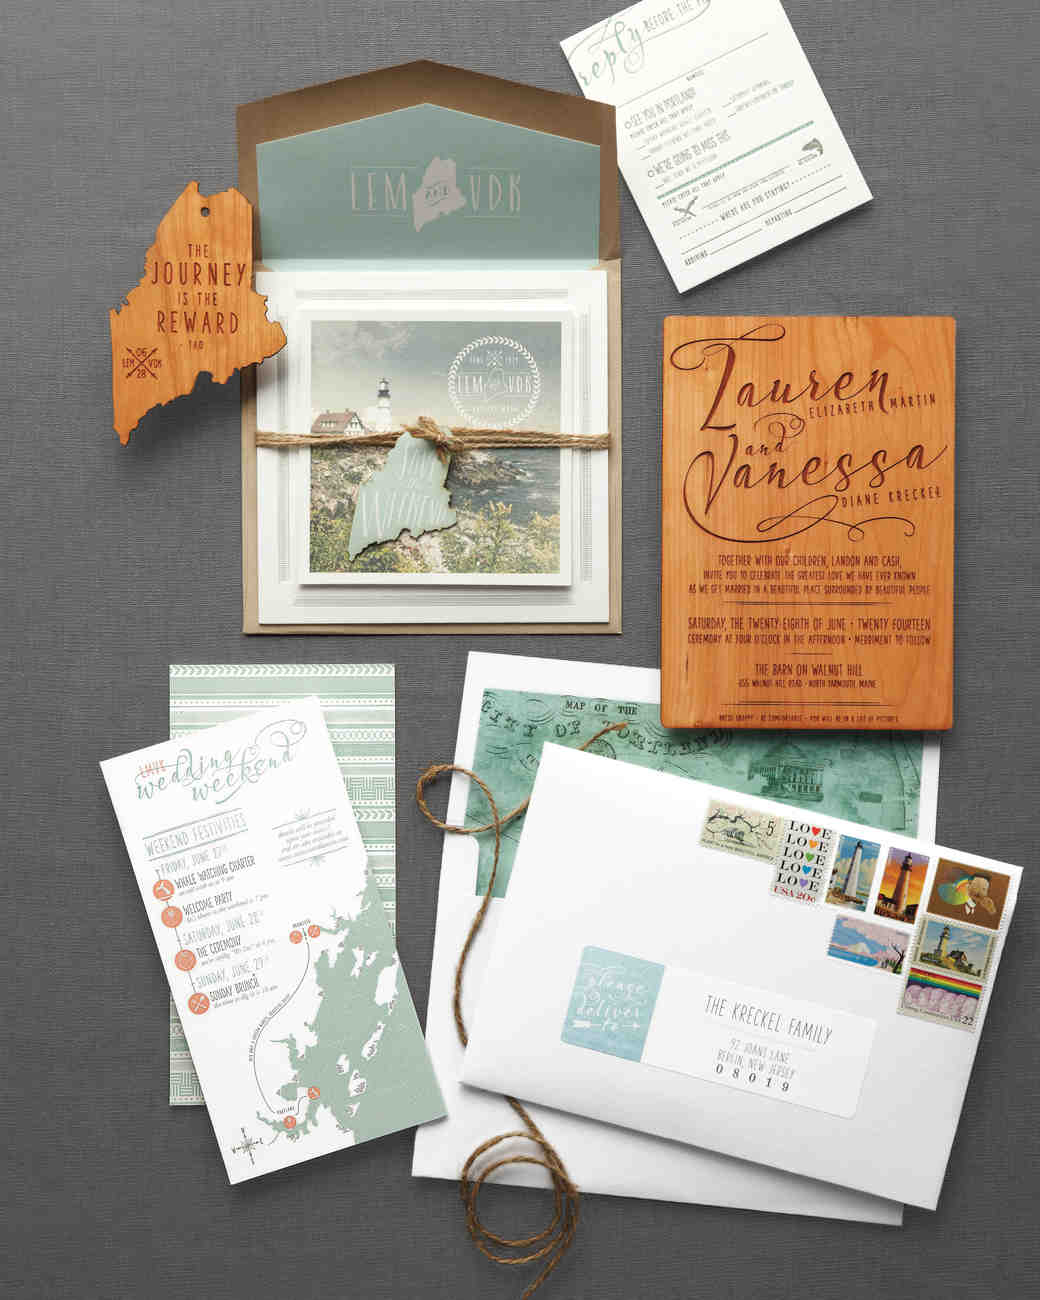 46 Elevated Ideas for Your Rustic Wedding Invitations | Martha ...